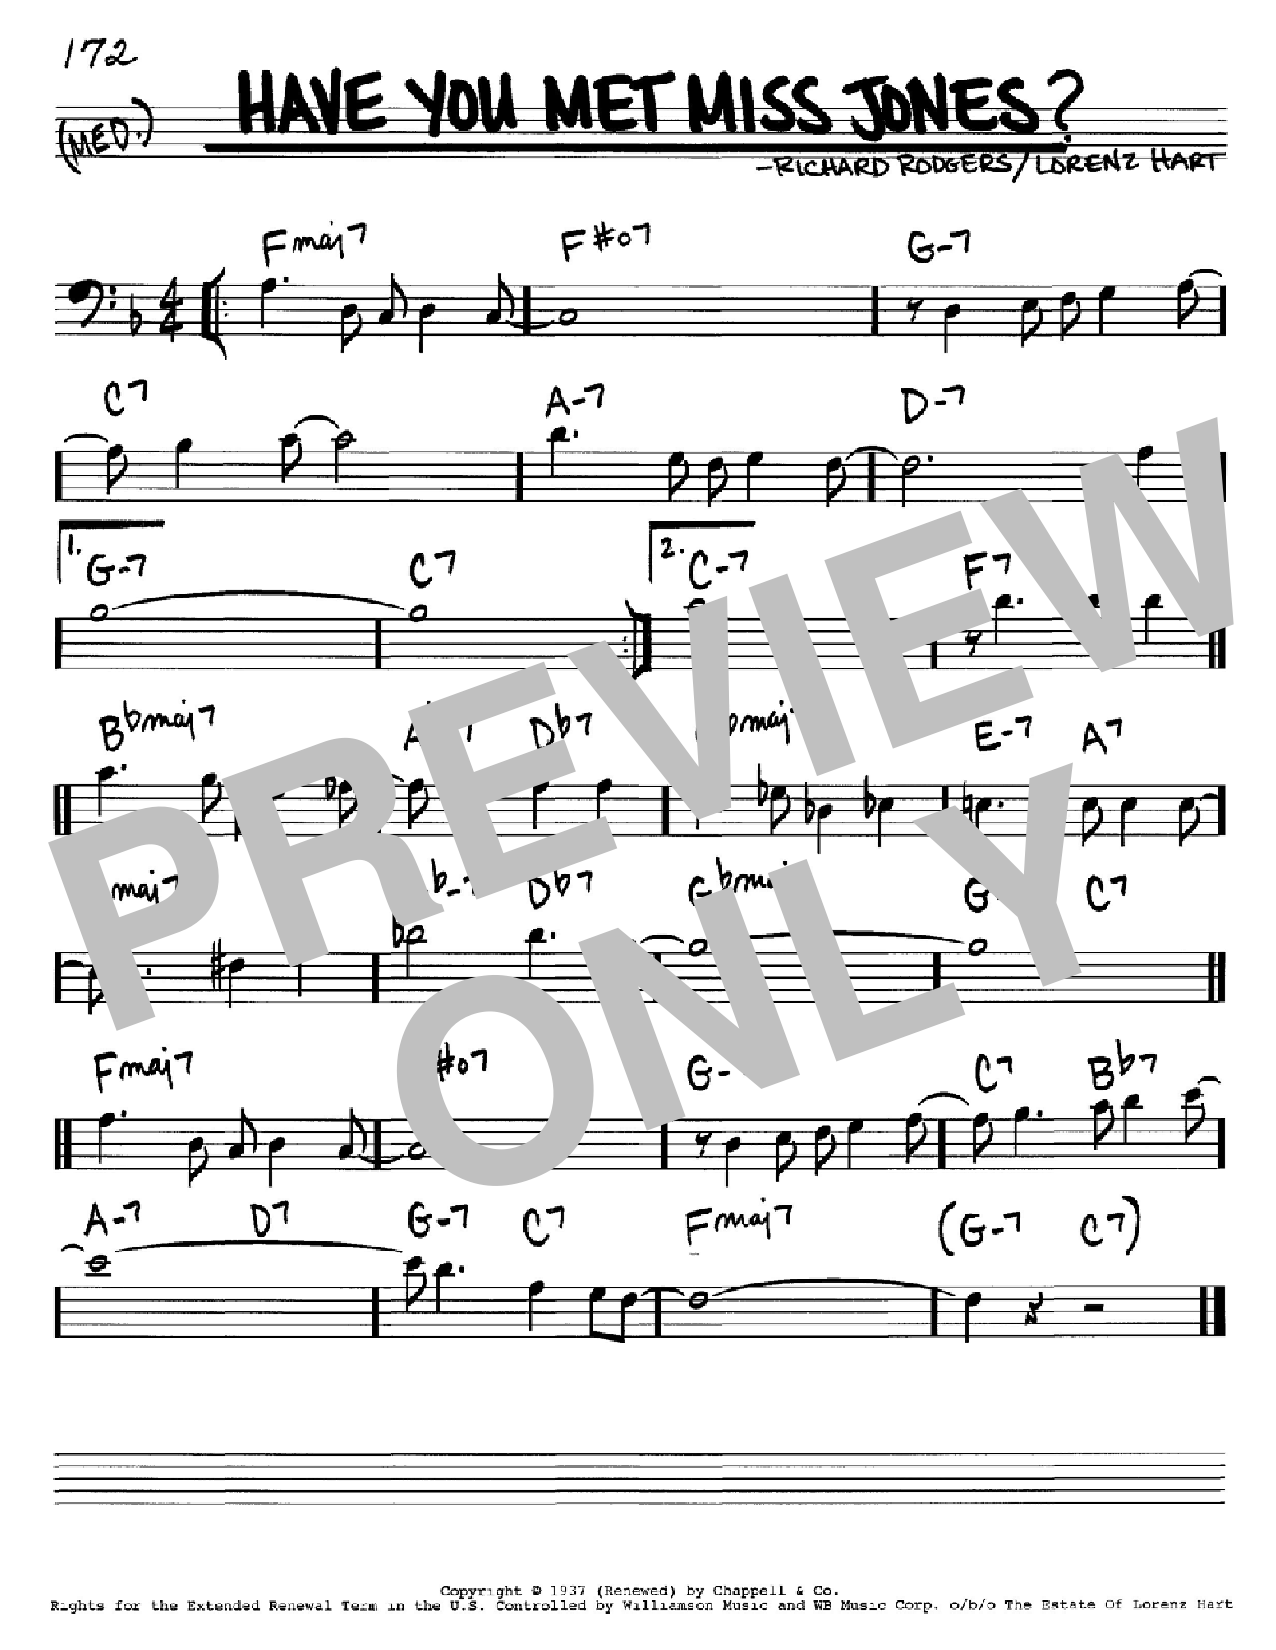 Have You Met Miss Jones? Sheet Music